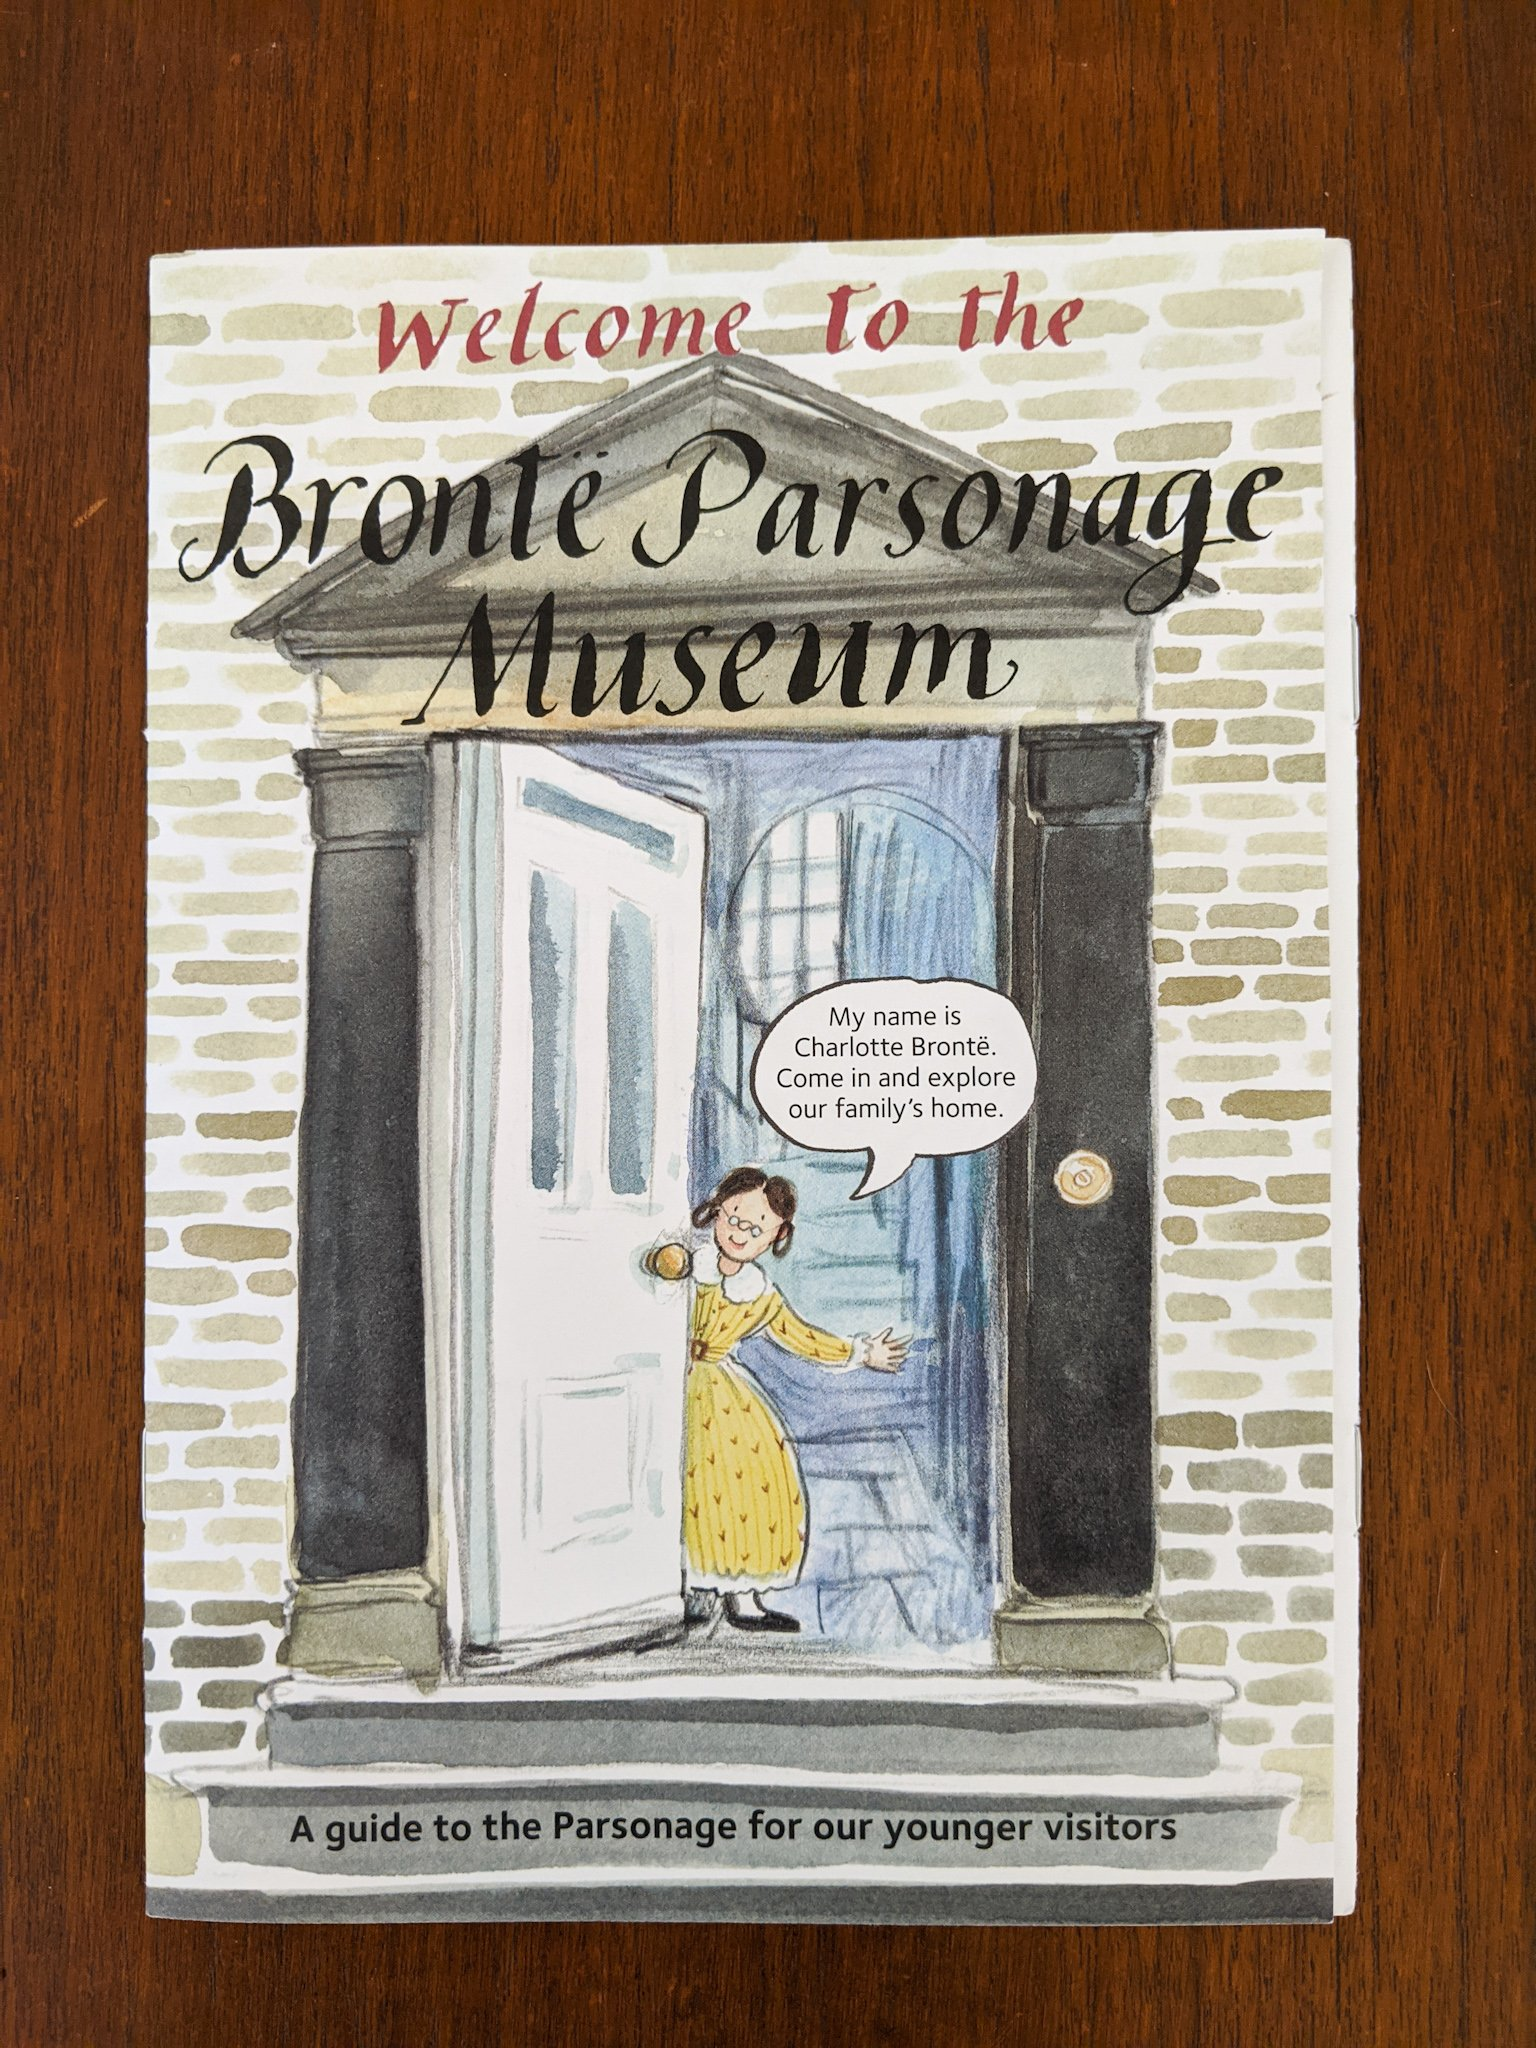 The Brontë Parsonage Museum guide for younger visitors